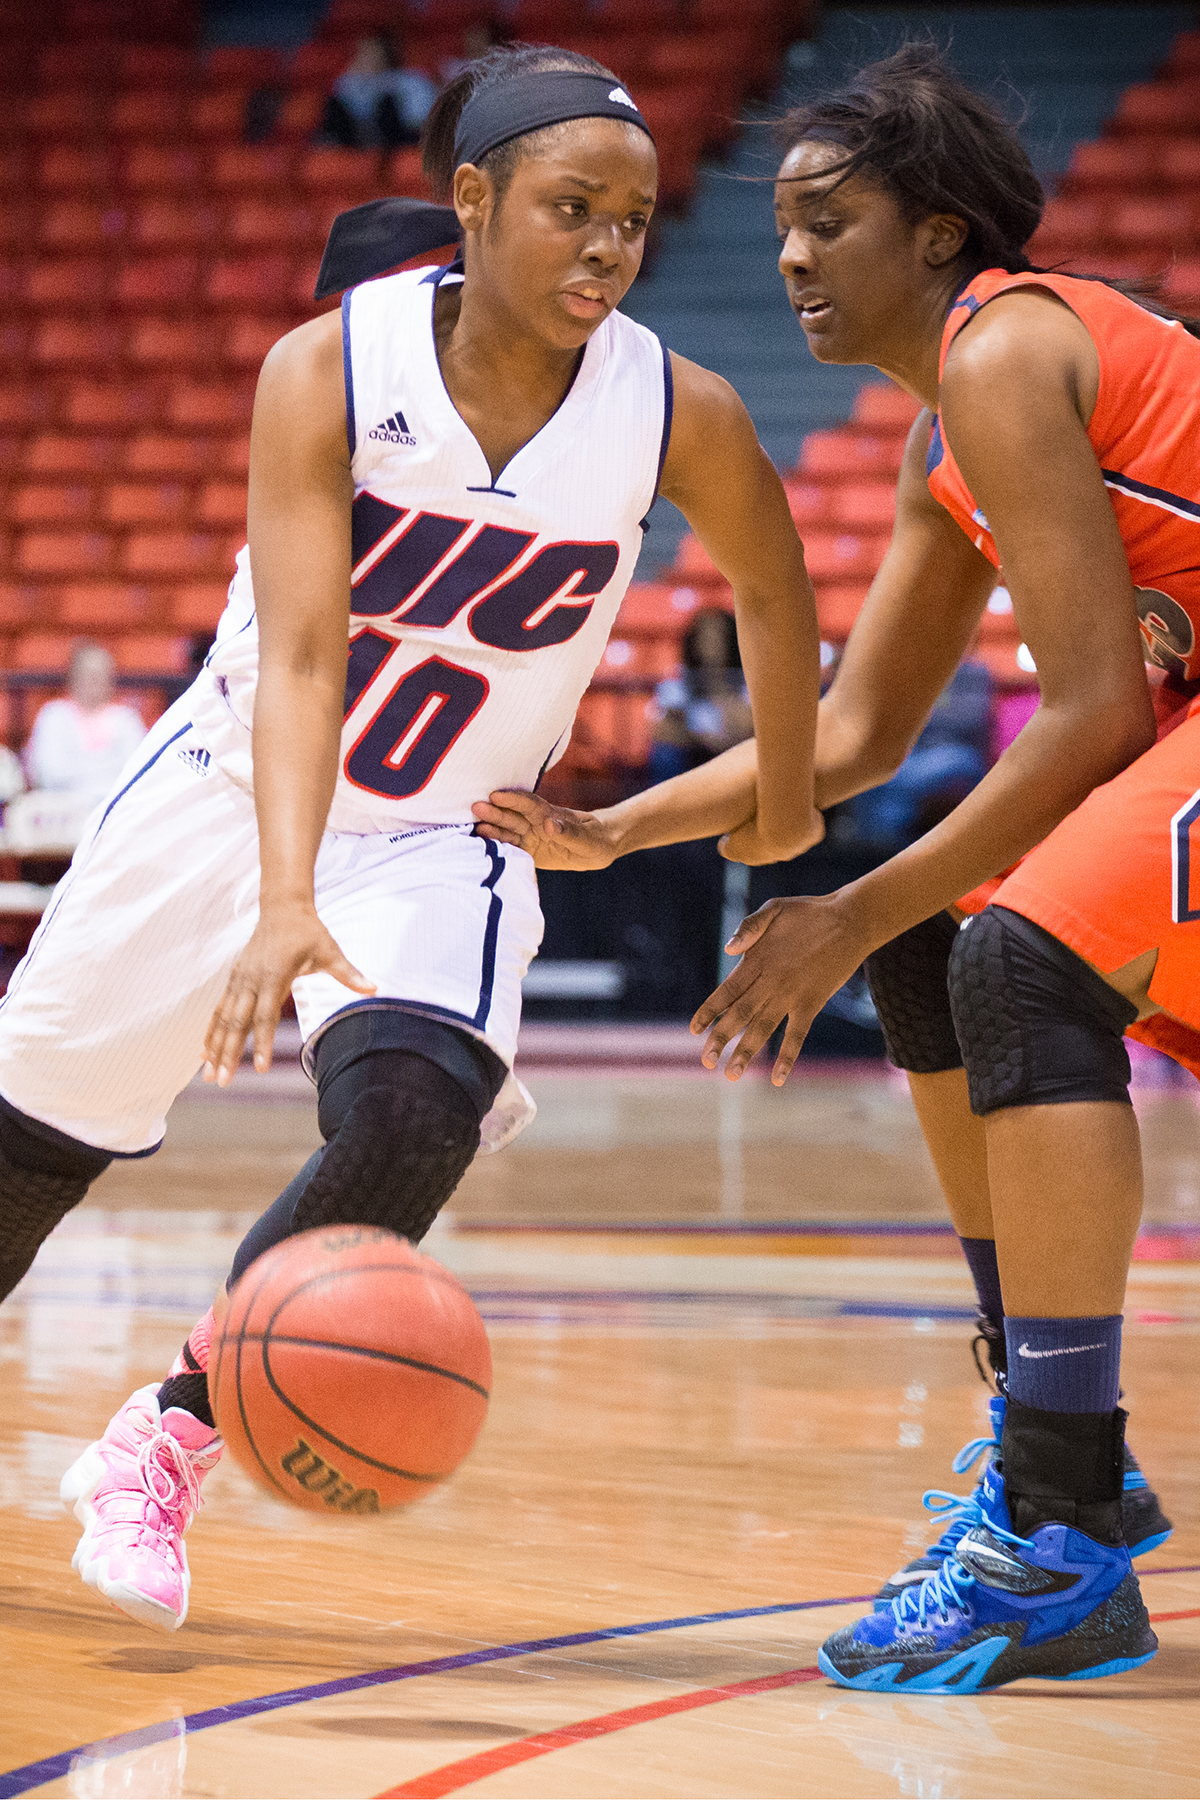 Women's basketball hot on boards | UIC Today